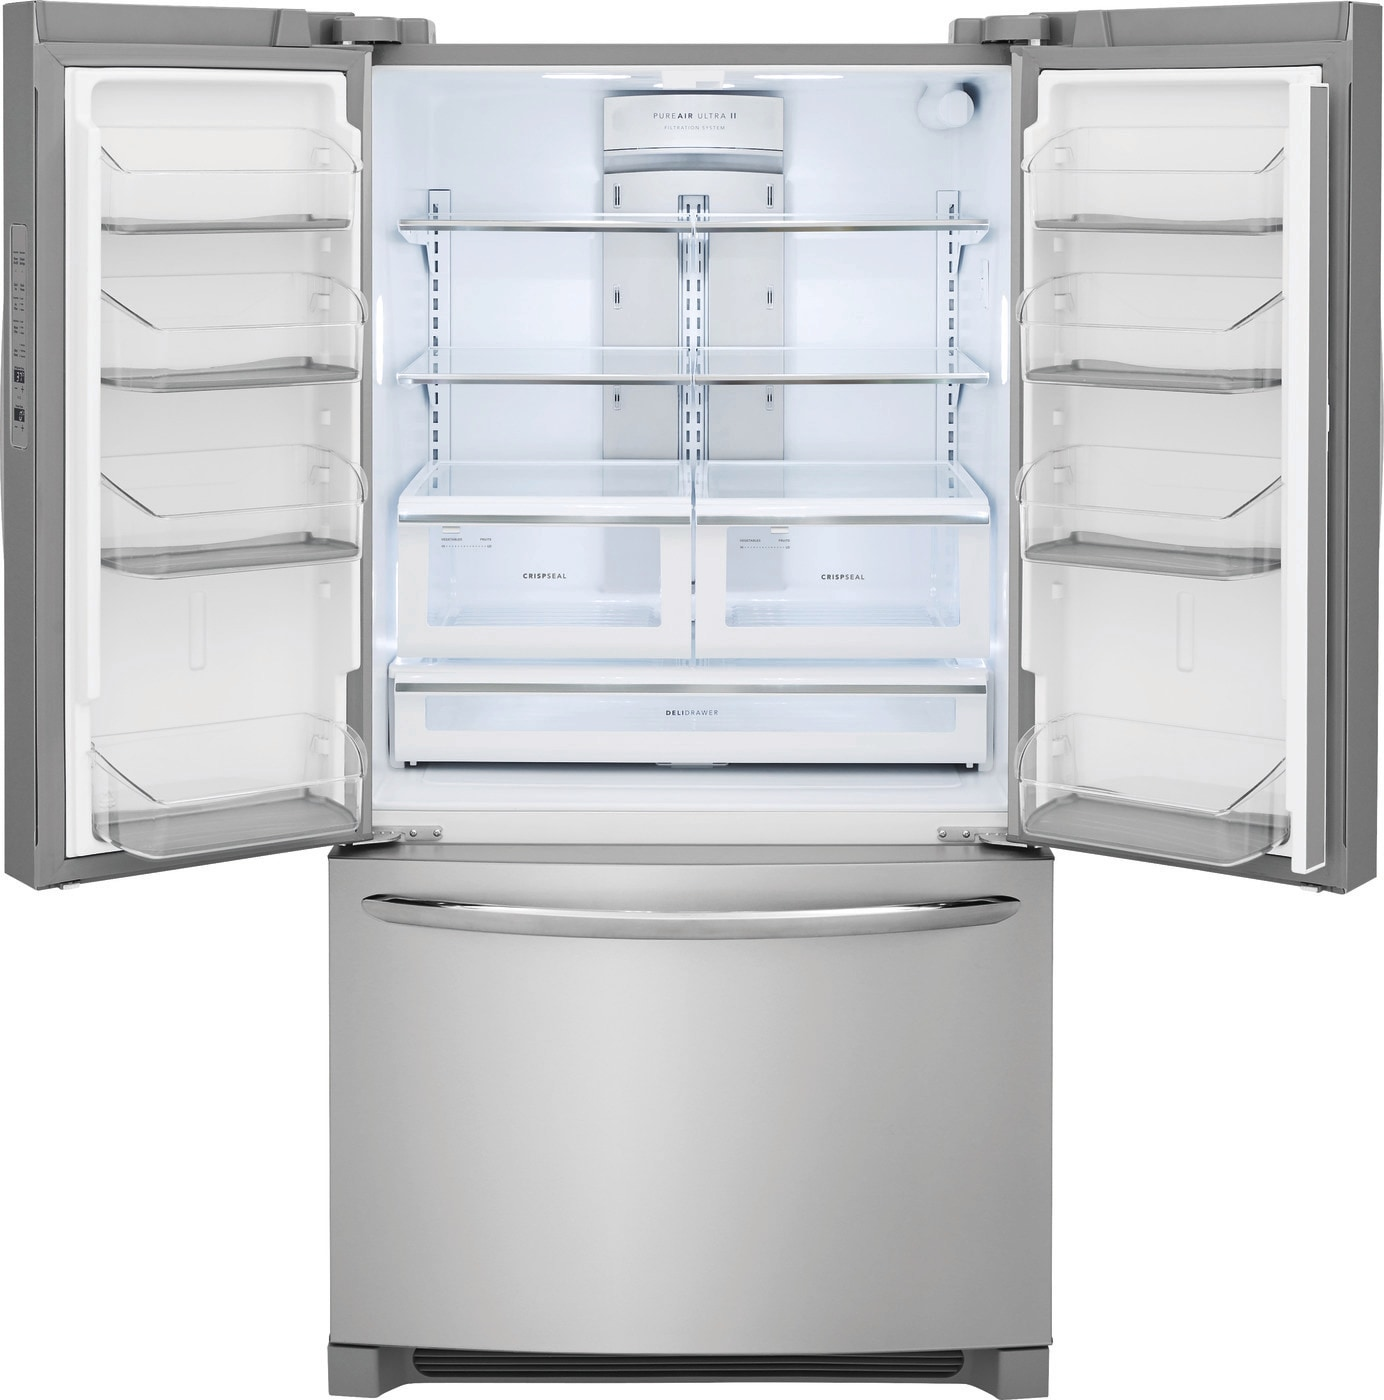 27.6 Cu. Ft. French Door Refrigerator Stainless Steel FGHN2868TF